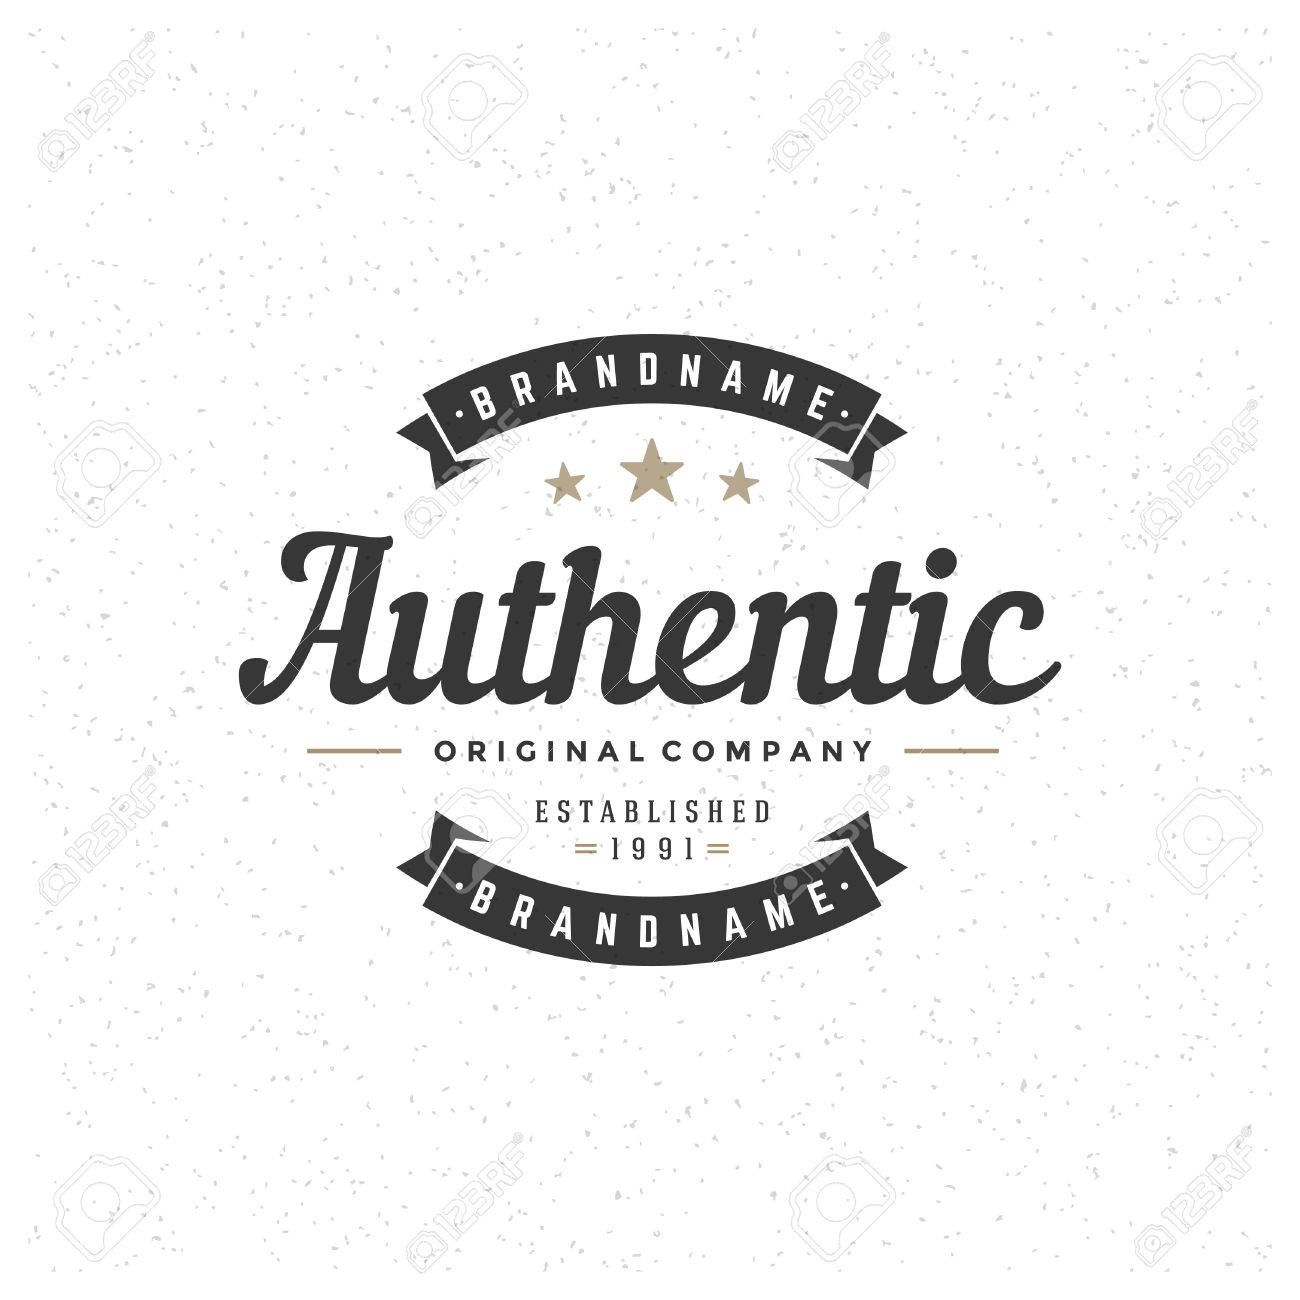 Retro Vintage Insignia Logotype Label Or Badge Vector Design Element Business Sign Template Aff Logoty Business Signs Logotype